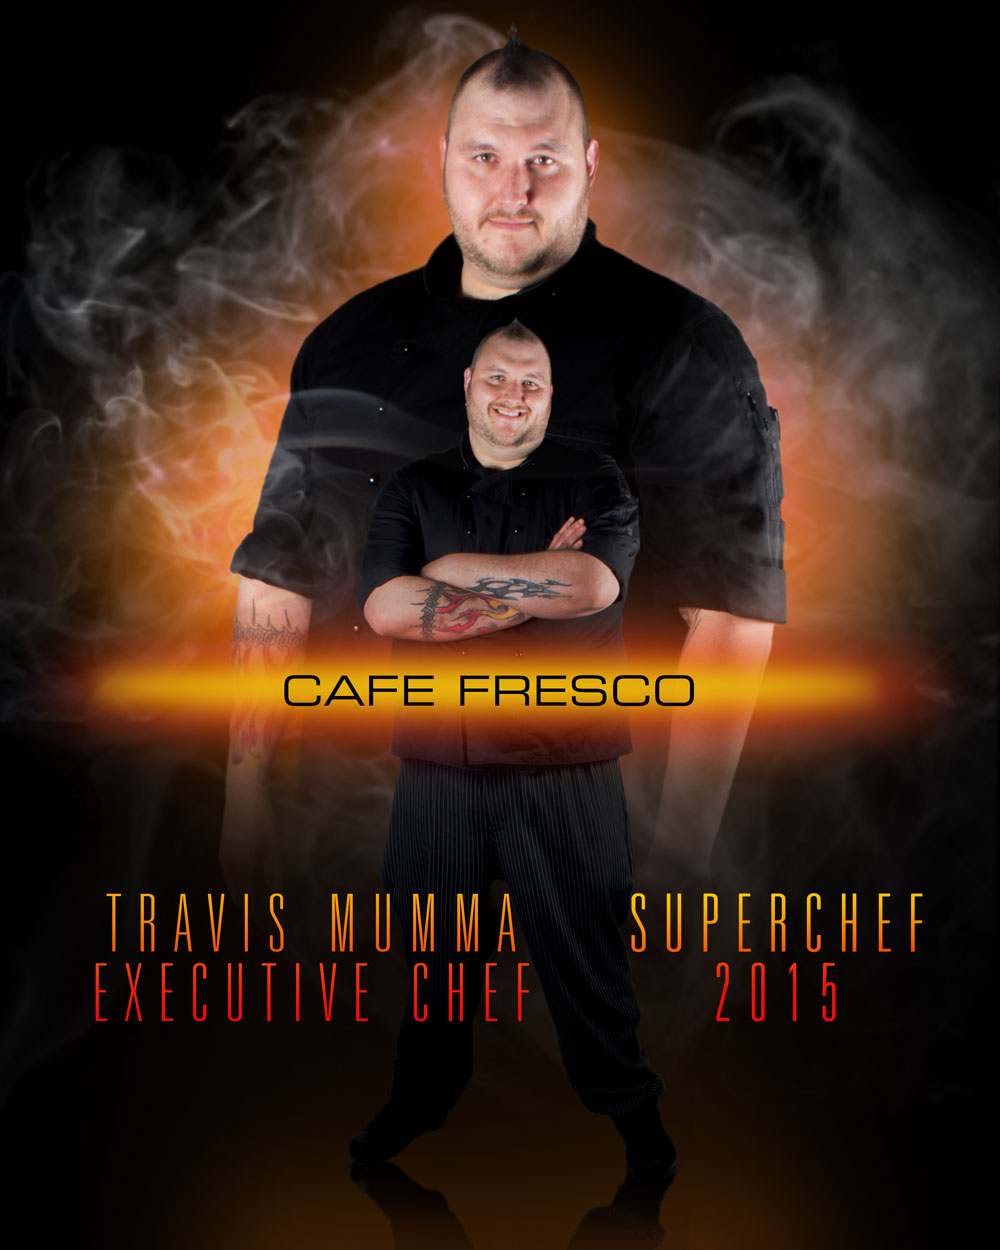 Travis Mumma, Executive Chef, Cafe Fresco